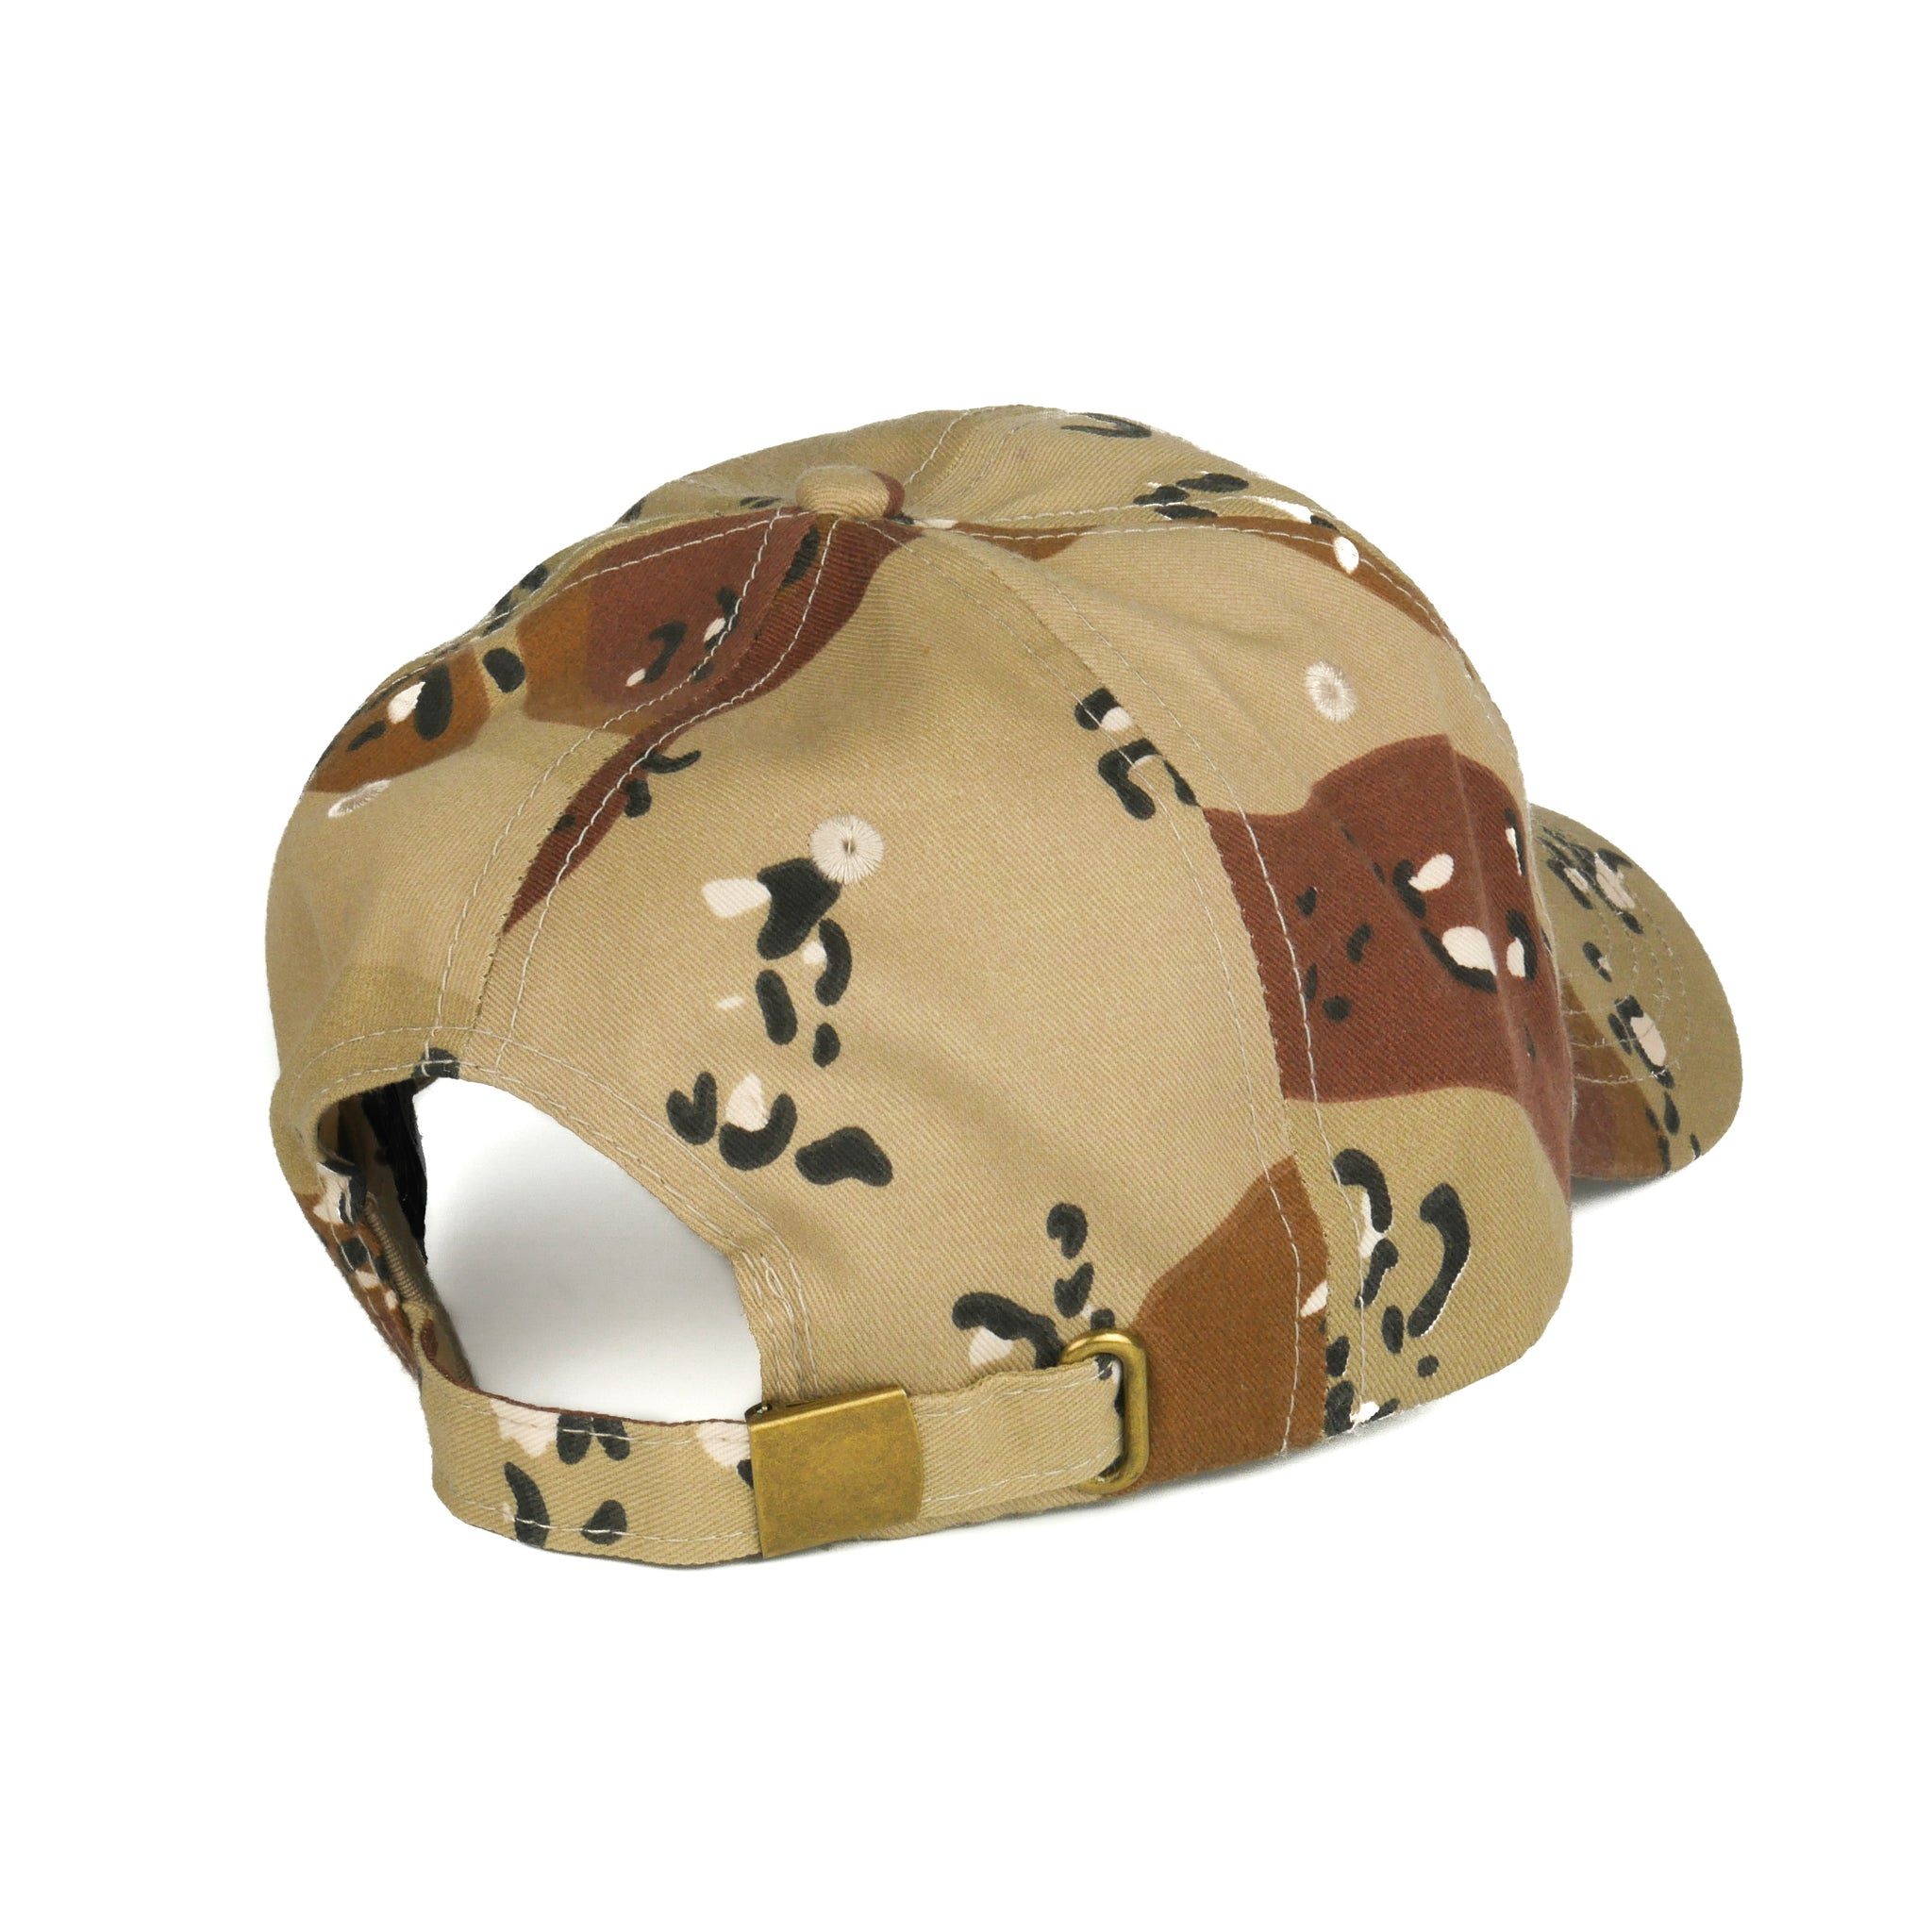 The Pops - 100% Cotton - Sand Camo